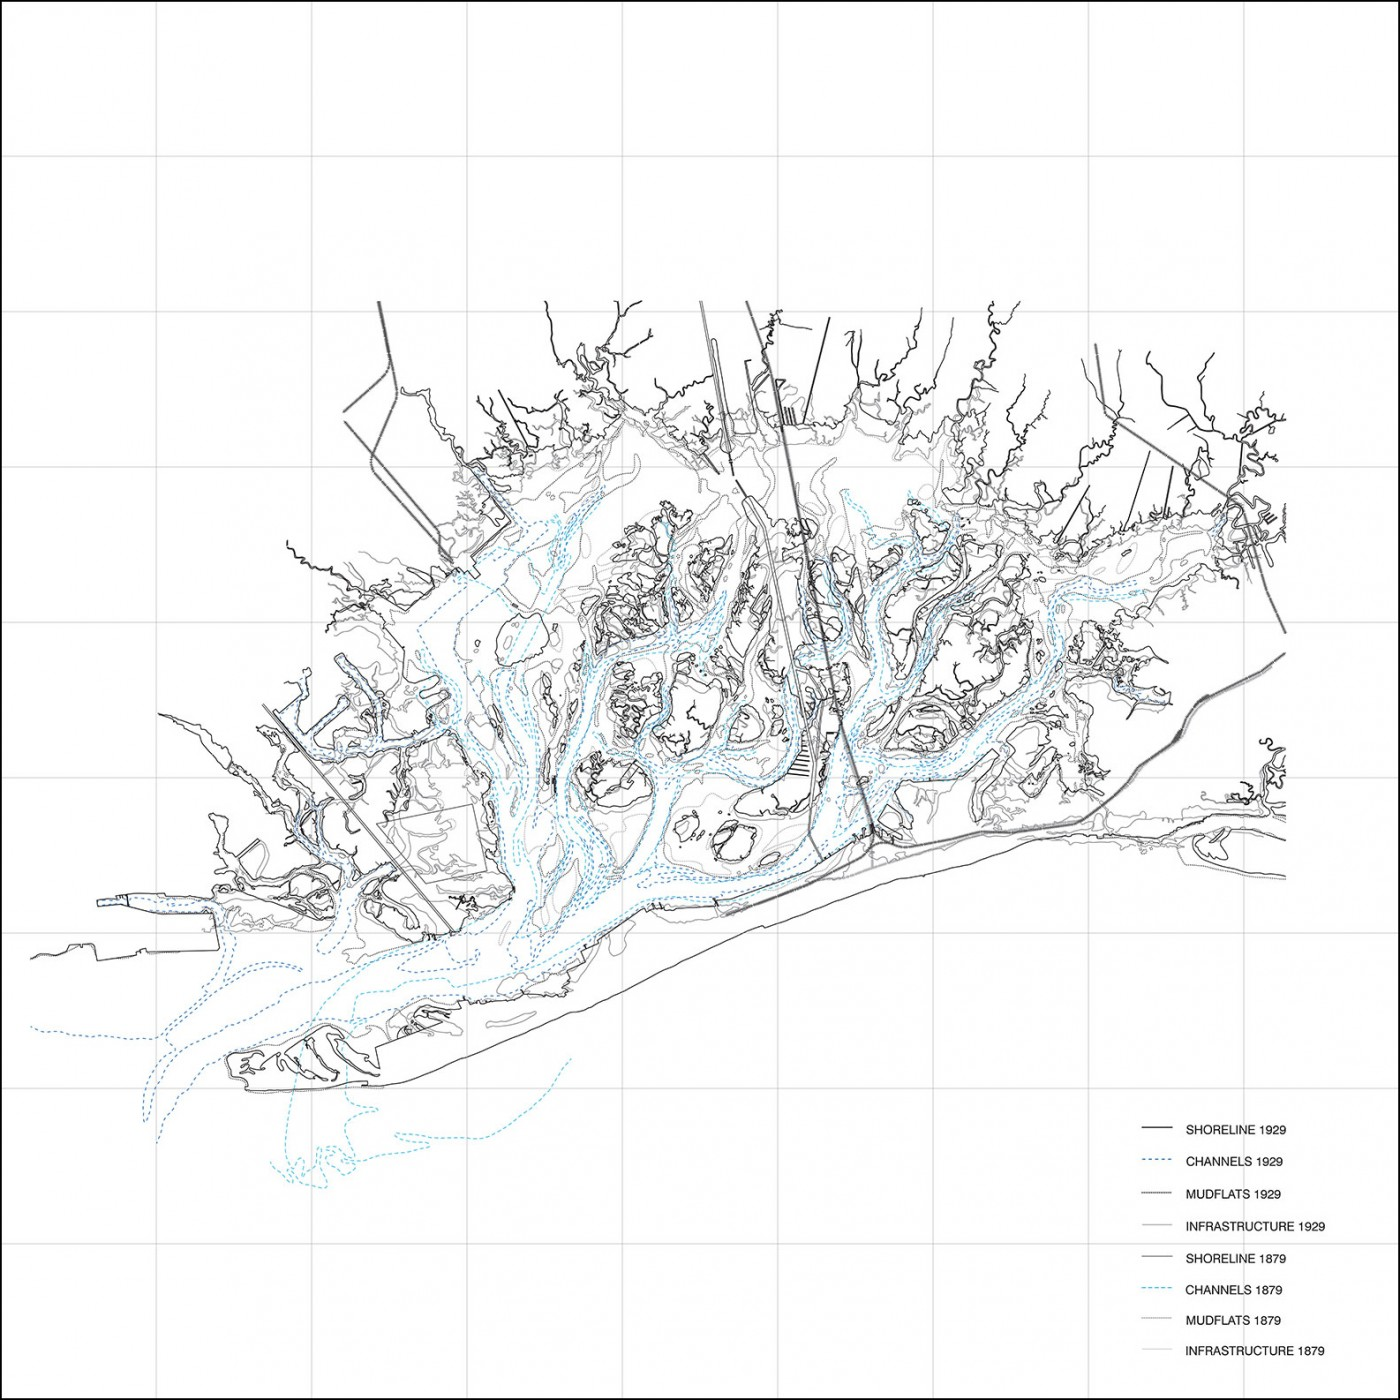 1400x1400 Jamaica Bay, Ny Structures Of Coastal Resilience